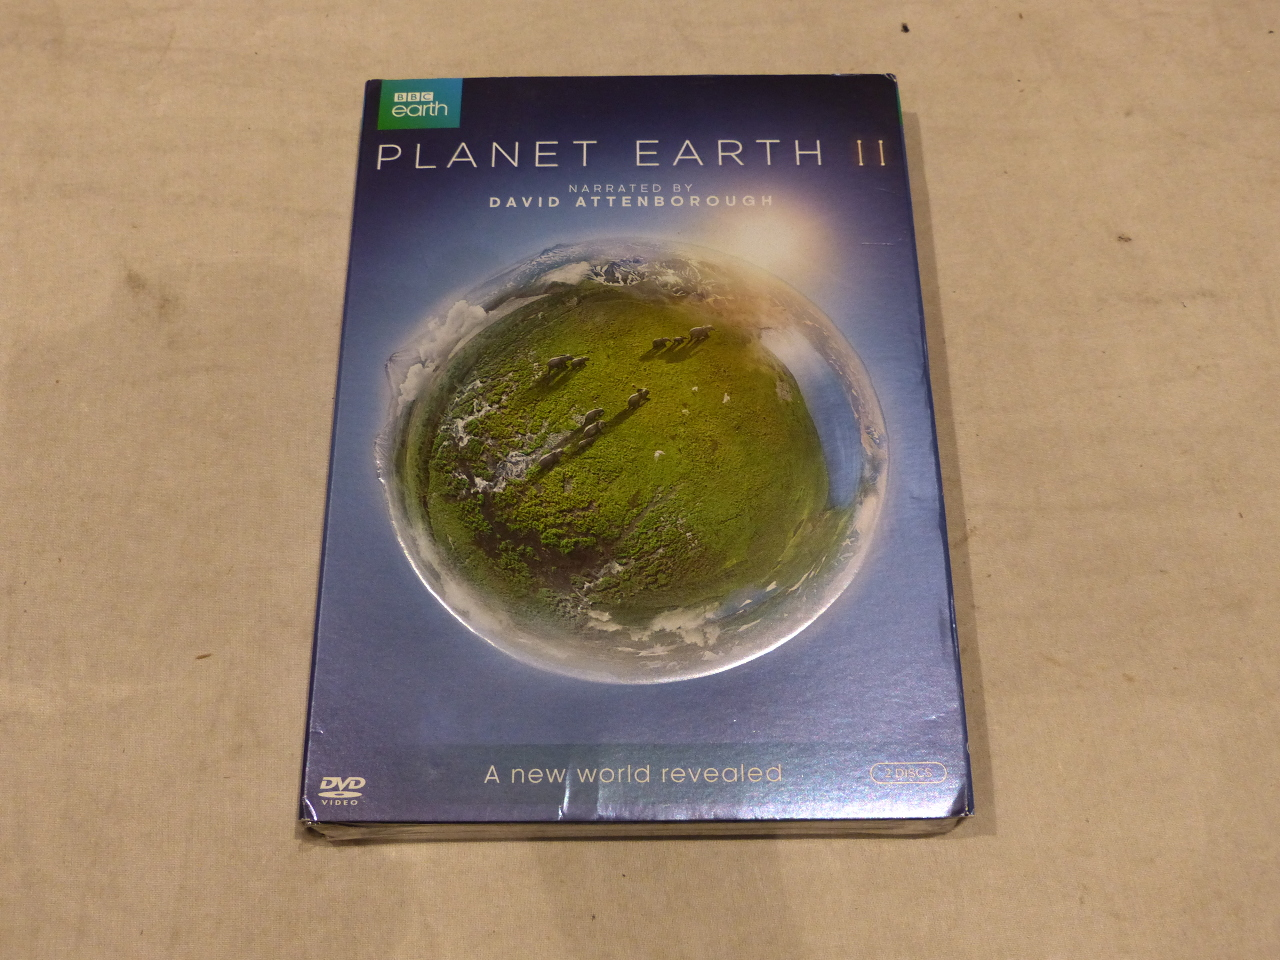 PLANET EARTH II (BBC EARTH) DVD SET NEW WITH SLIPCOVER ...